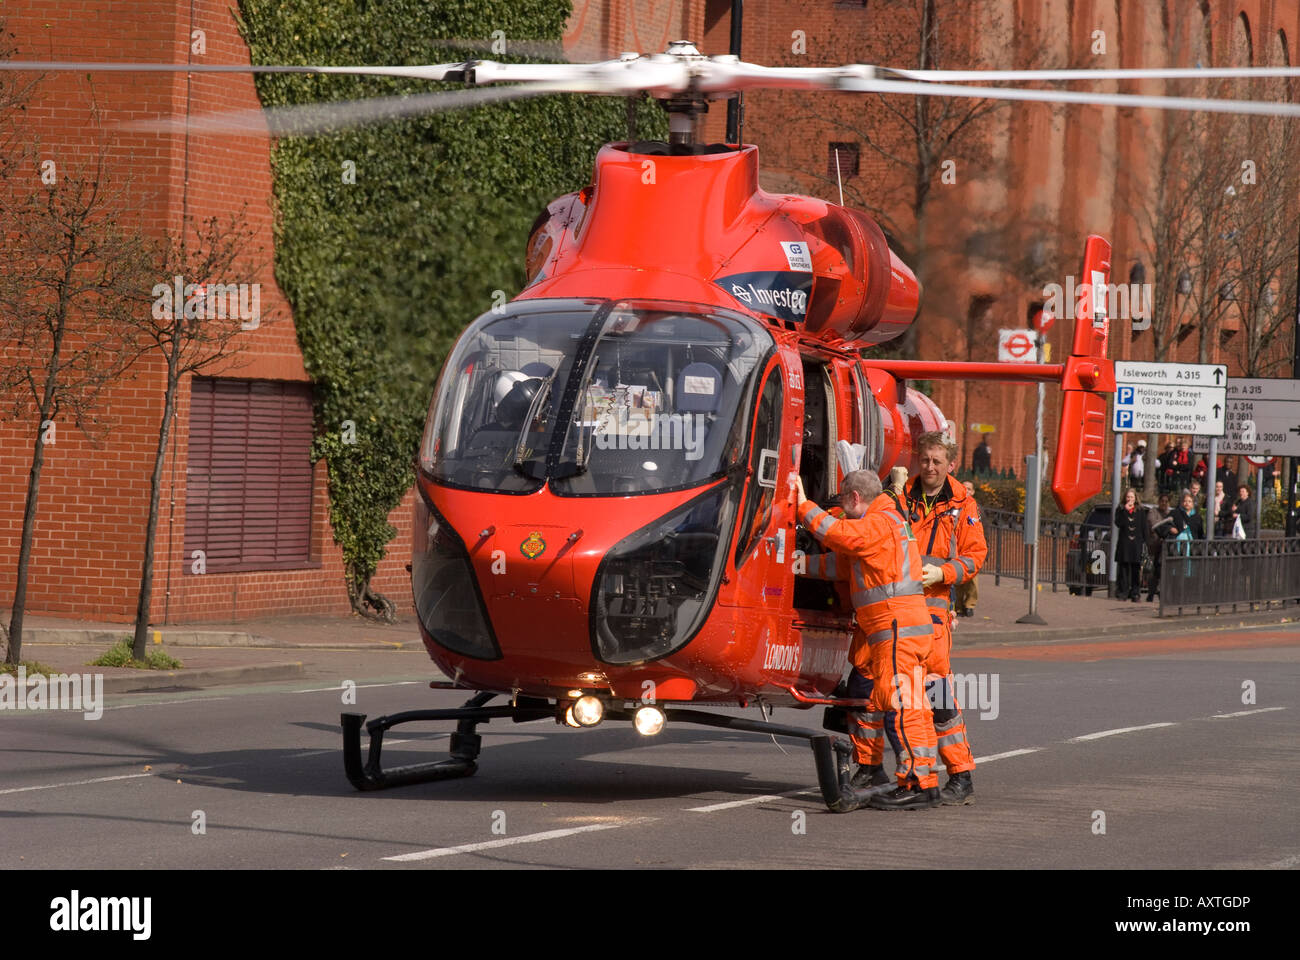 Air Ambulance on the scene at a road traffic accident Hounslow Middlesex Sunday 30th March 2008 - Stock Image